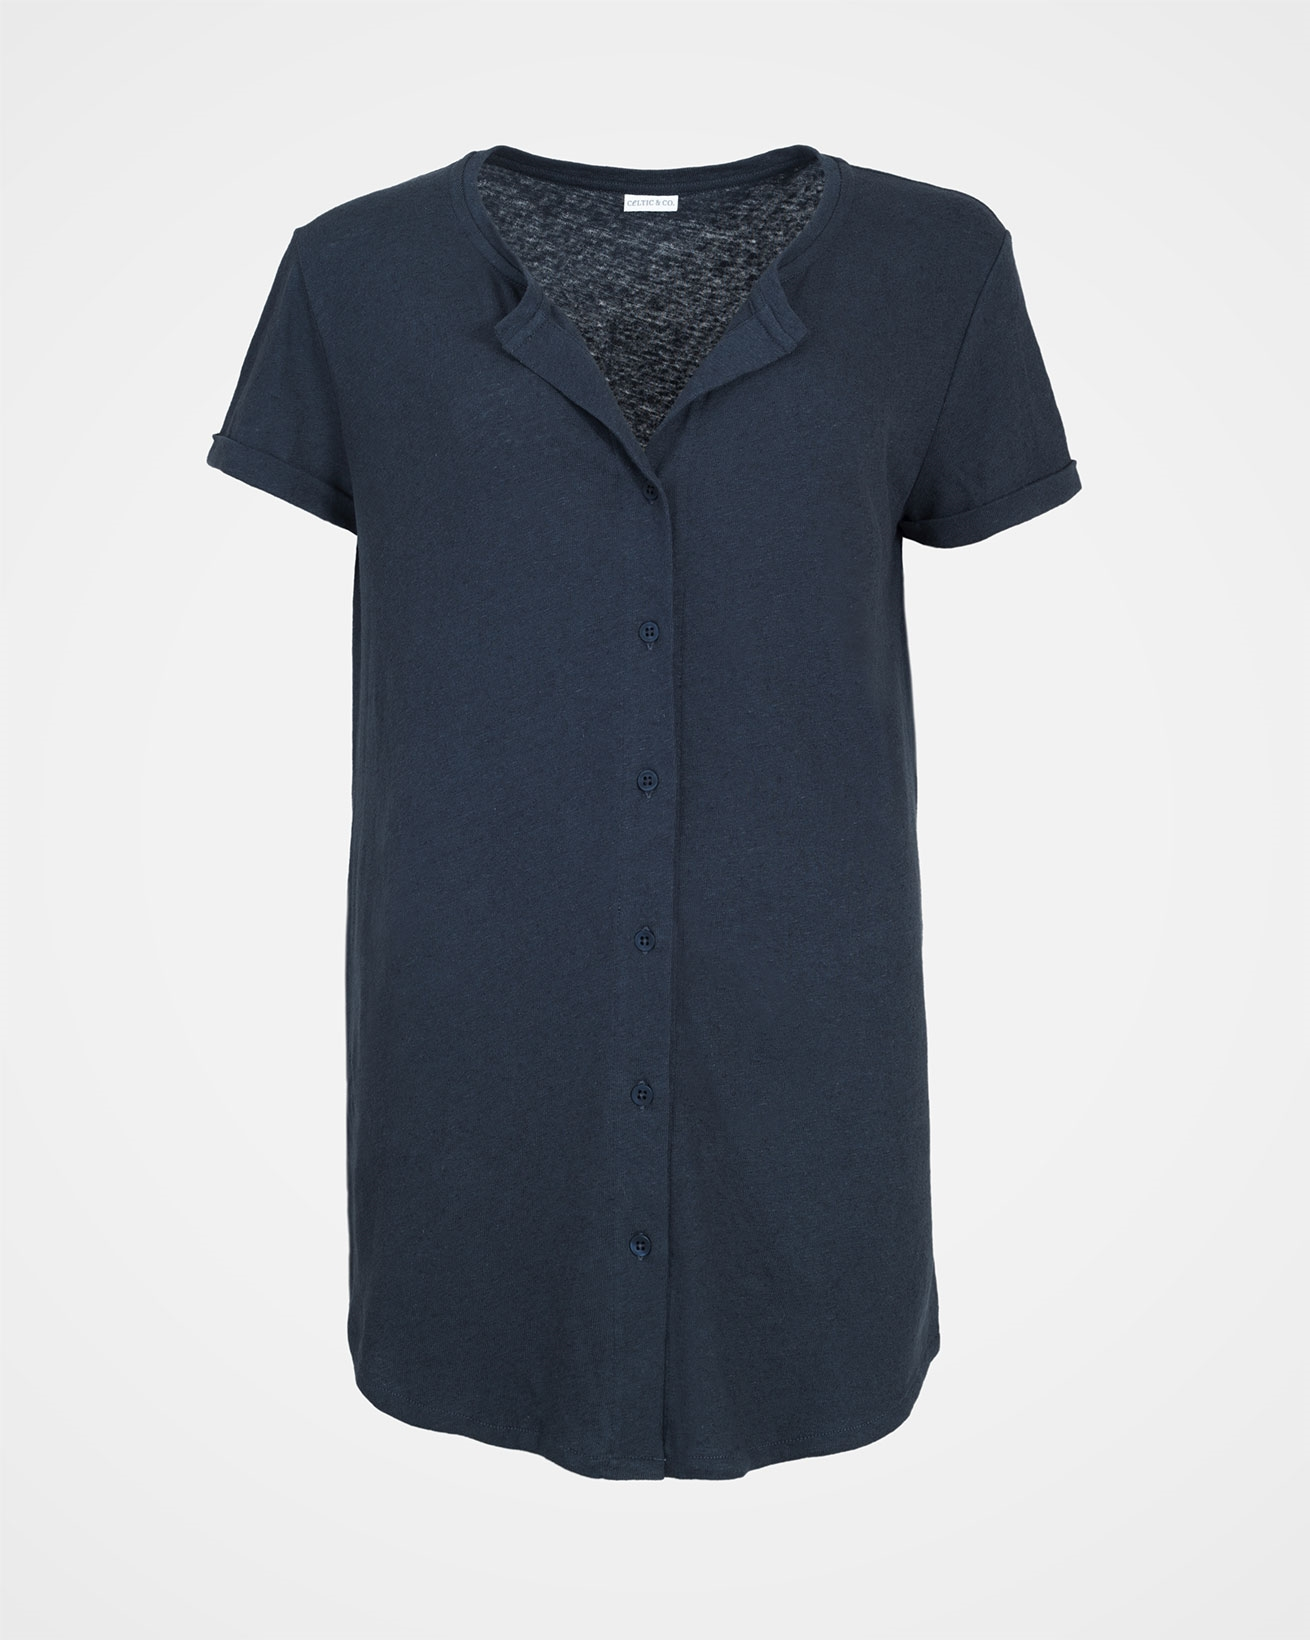 7682_linen-button-through-top_navy_front.jpg